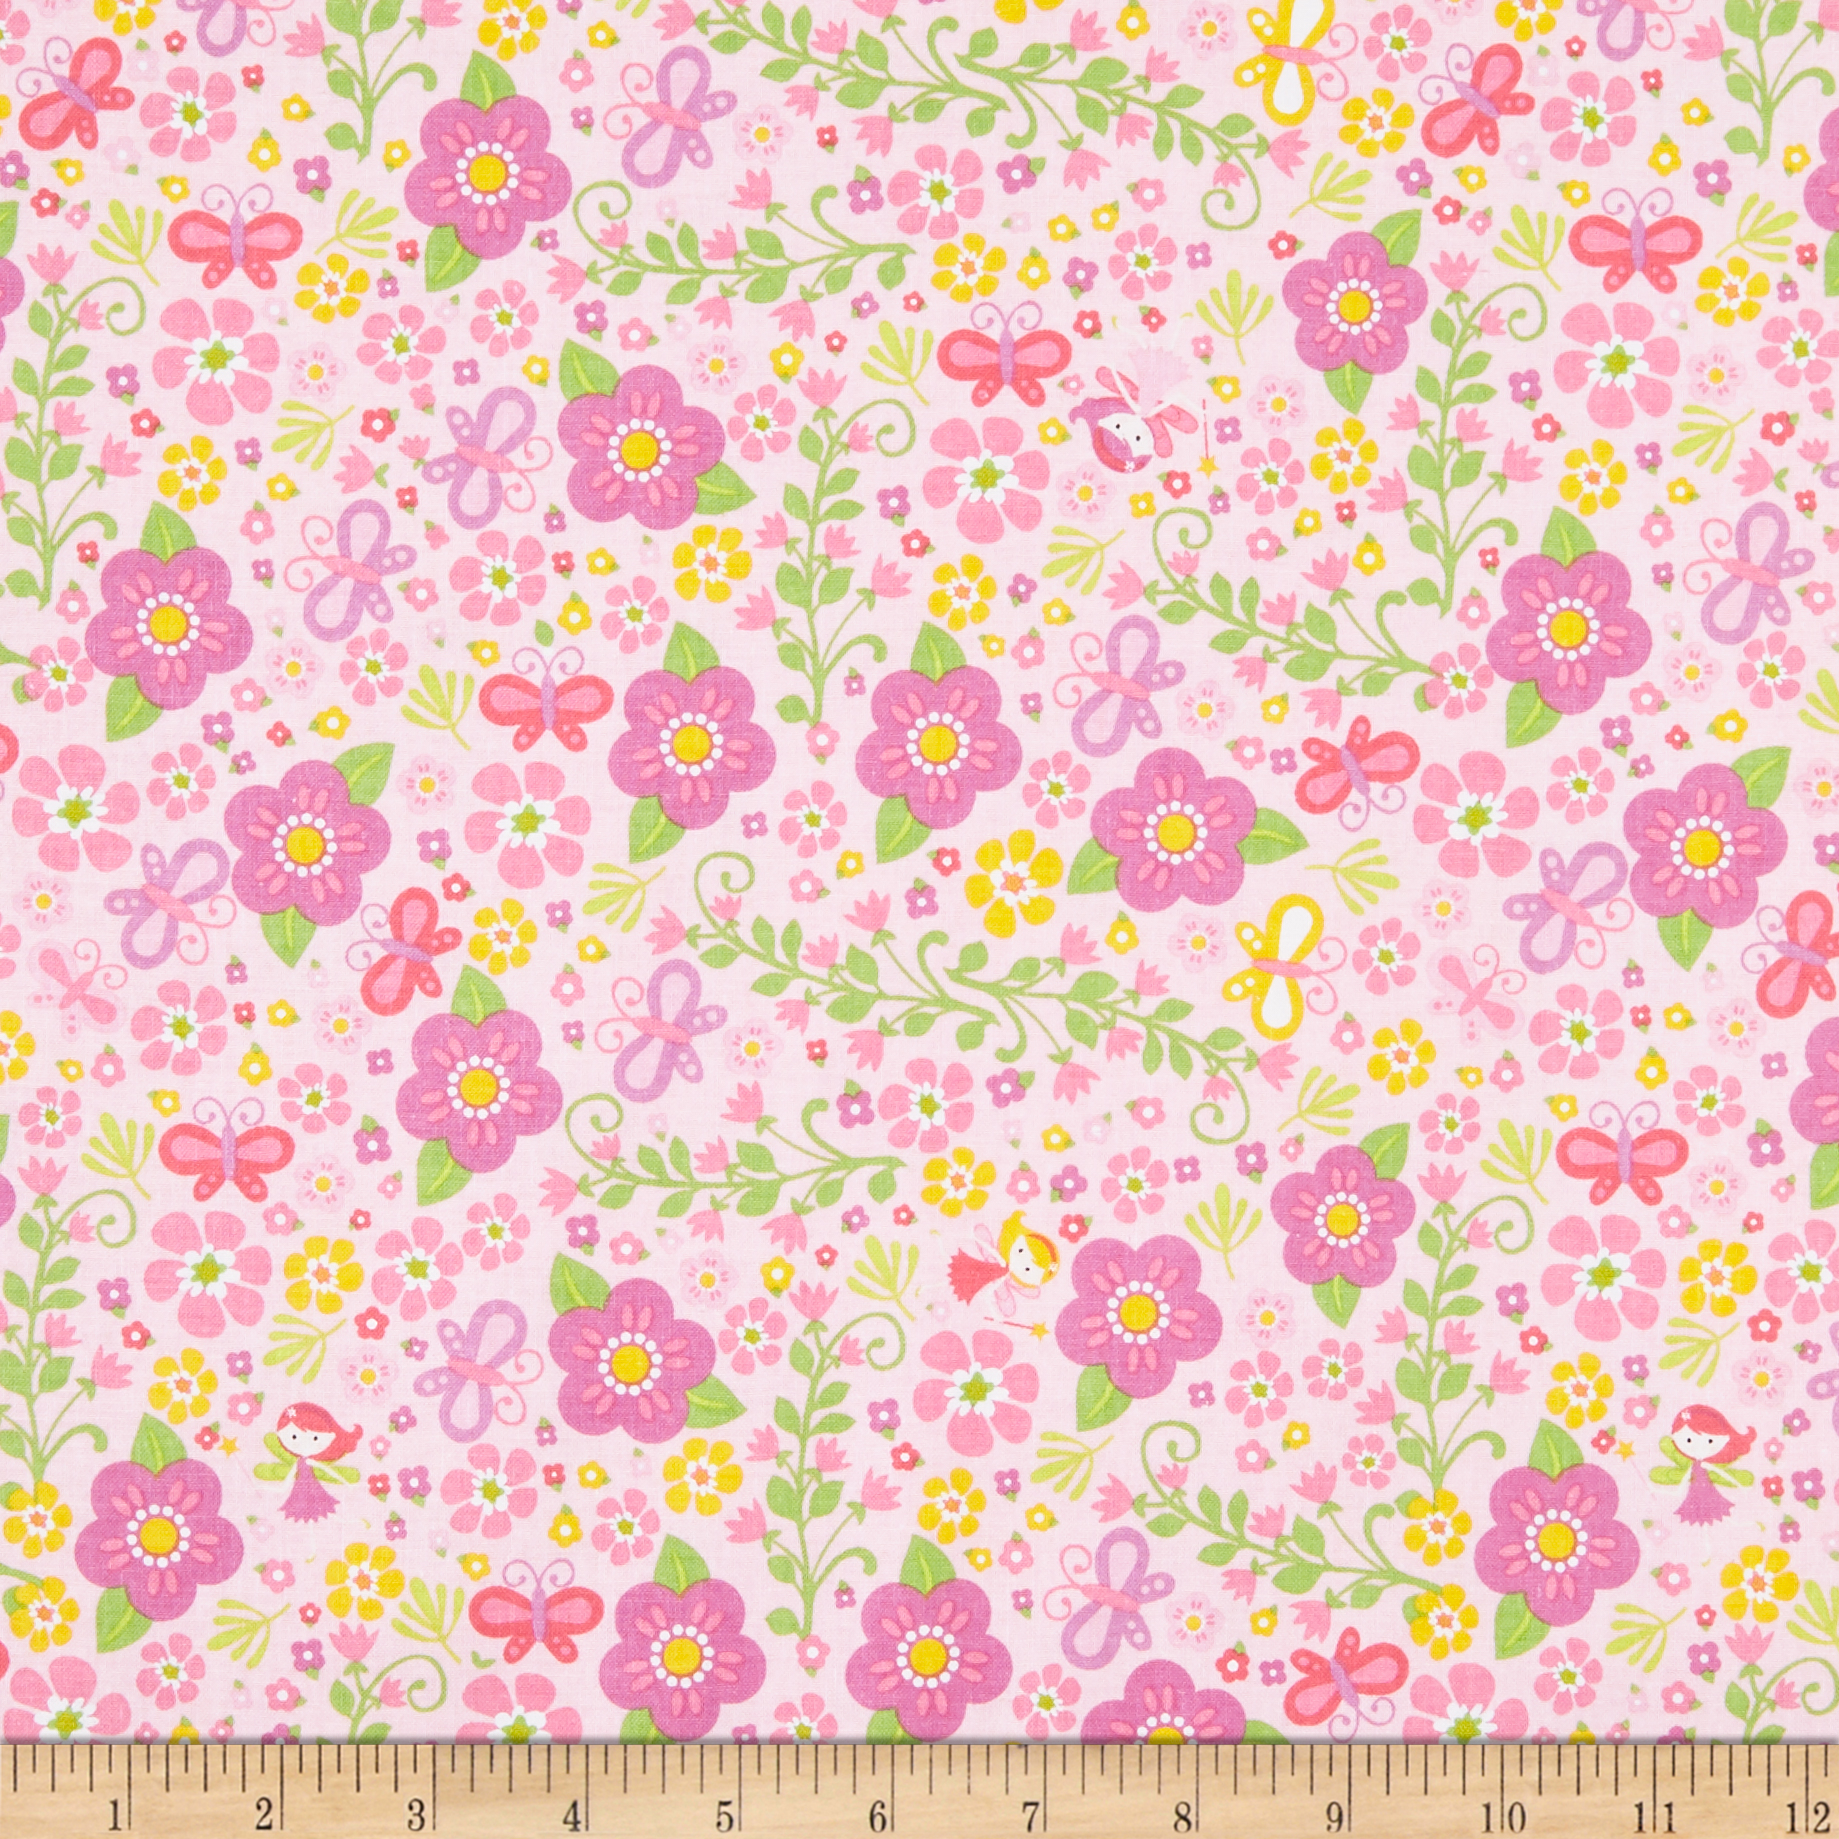 INOpets.com Anything for Pets Parents & Their Pets Riley Blake Fairy Garden Garden Pink Fabric